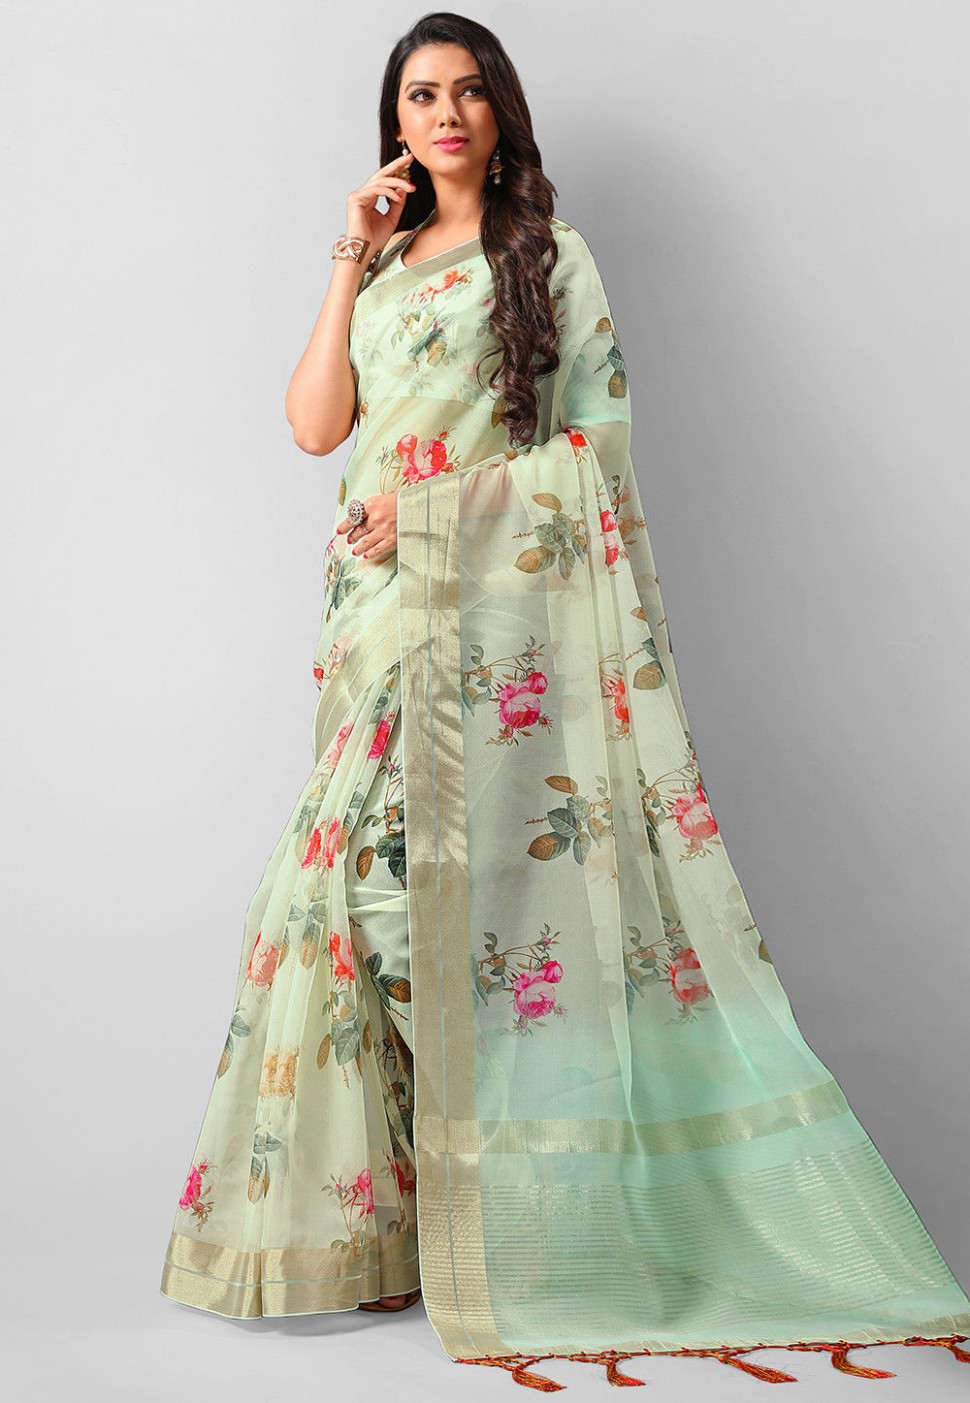 Digital Printed Organza Saree in Pastel Green : SSF6880